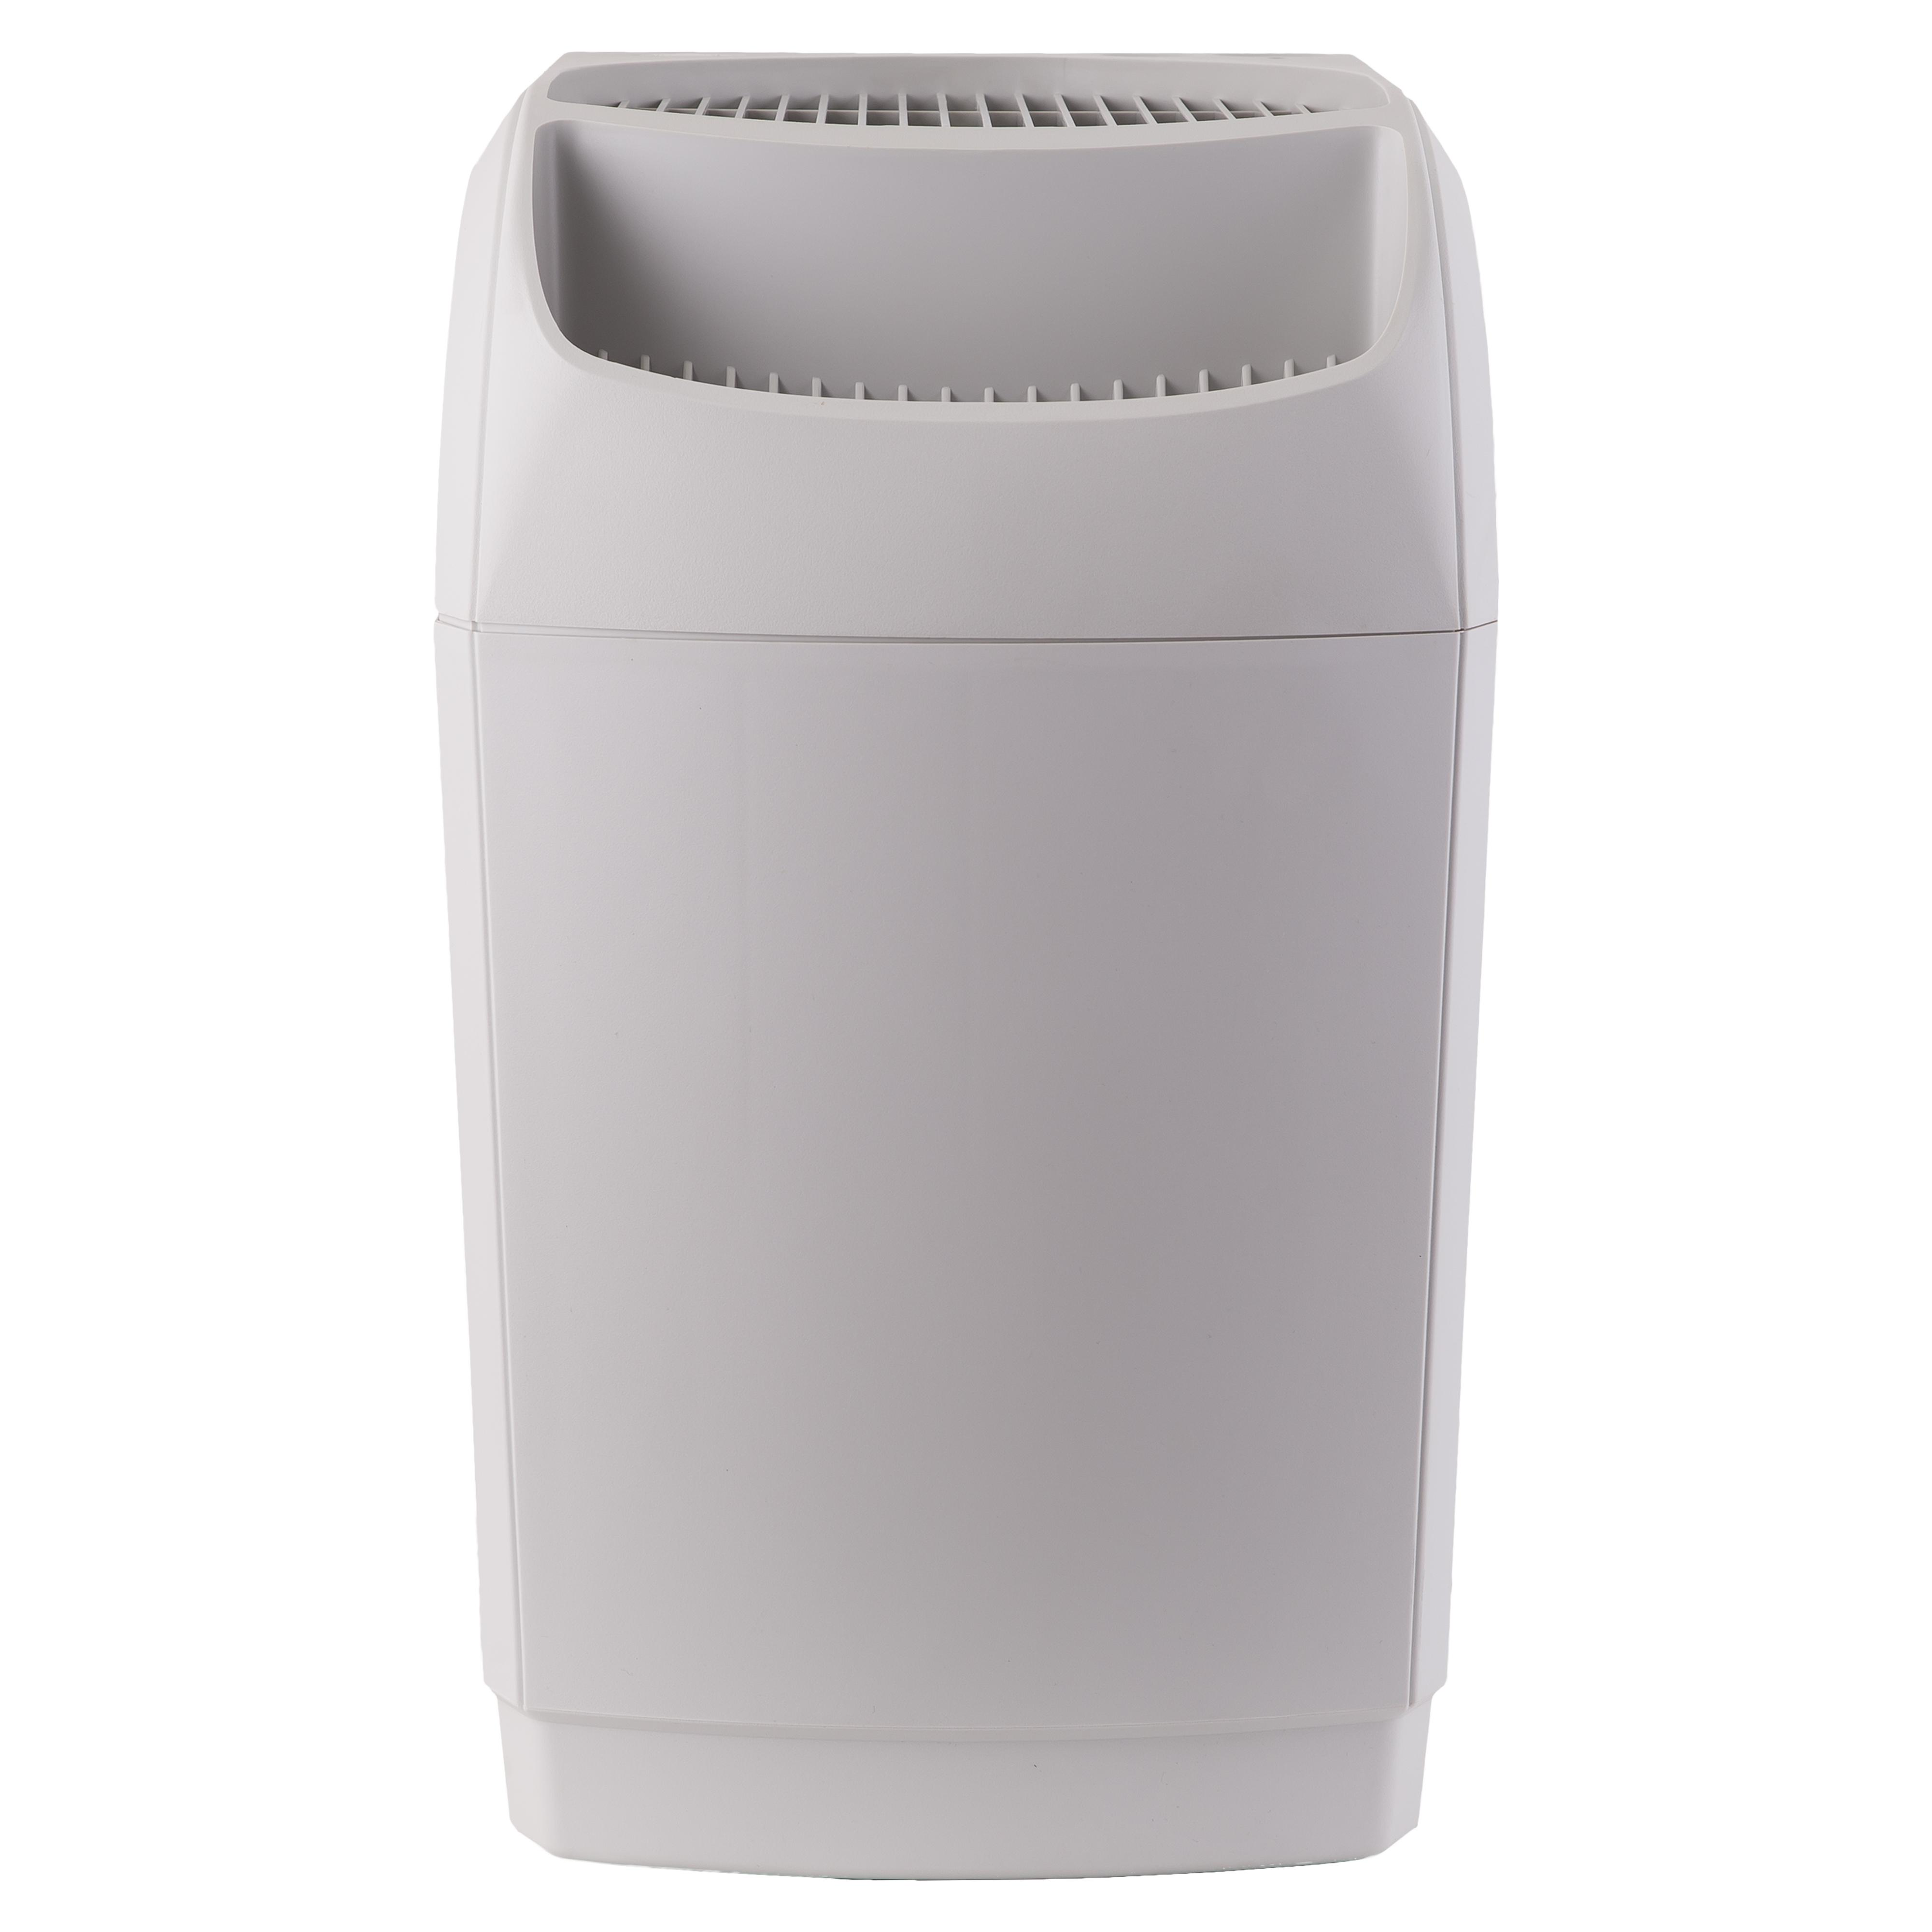 Aircare Ss390dwht Space Saver Evaporative Humidifier